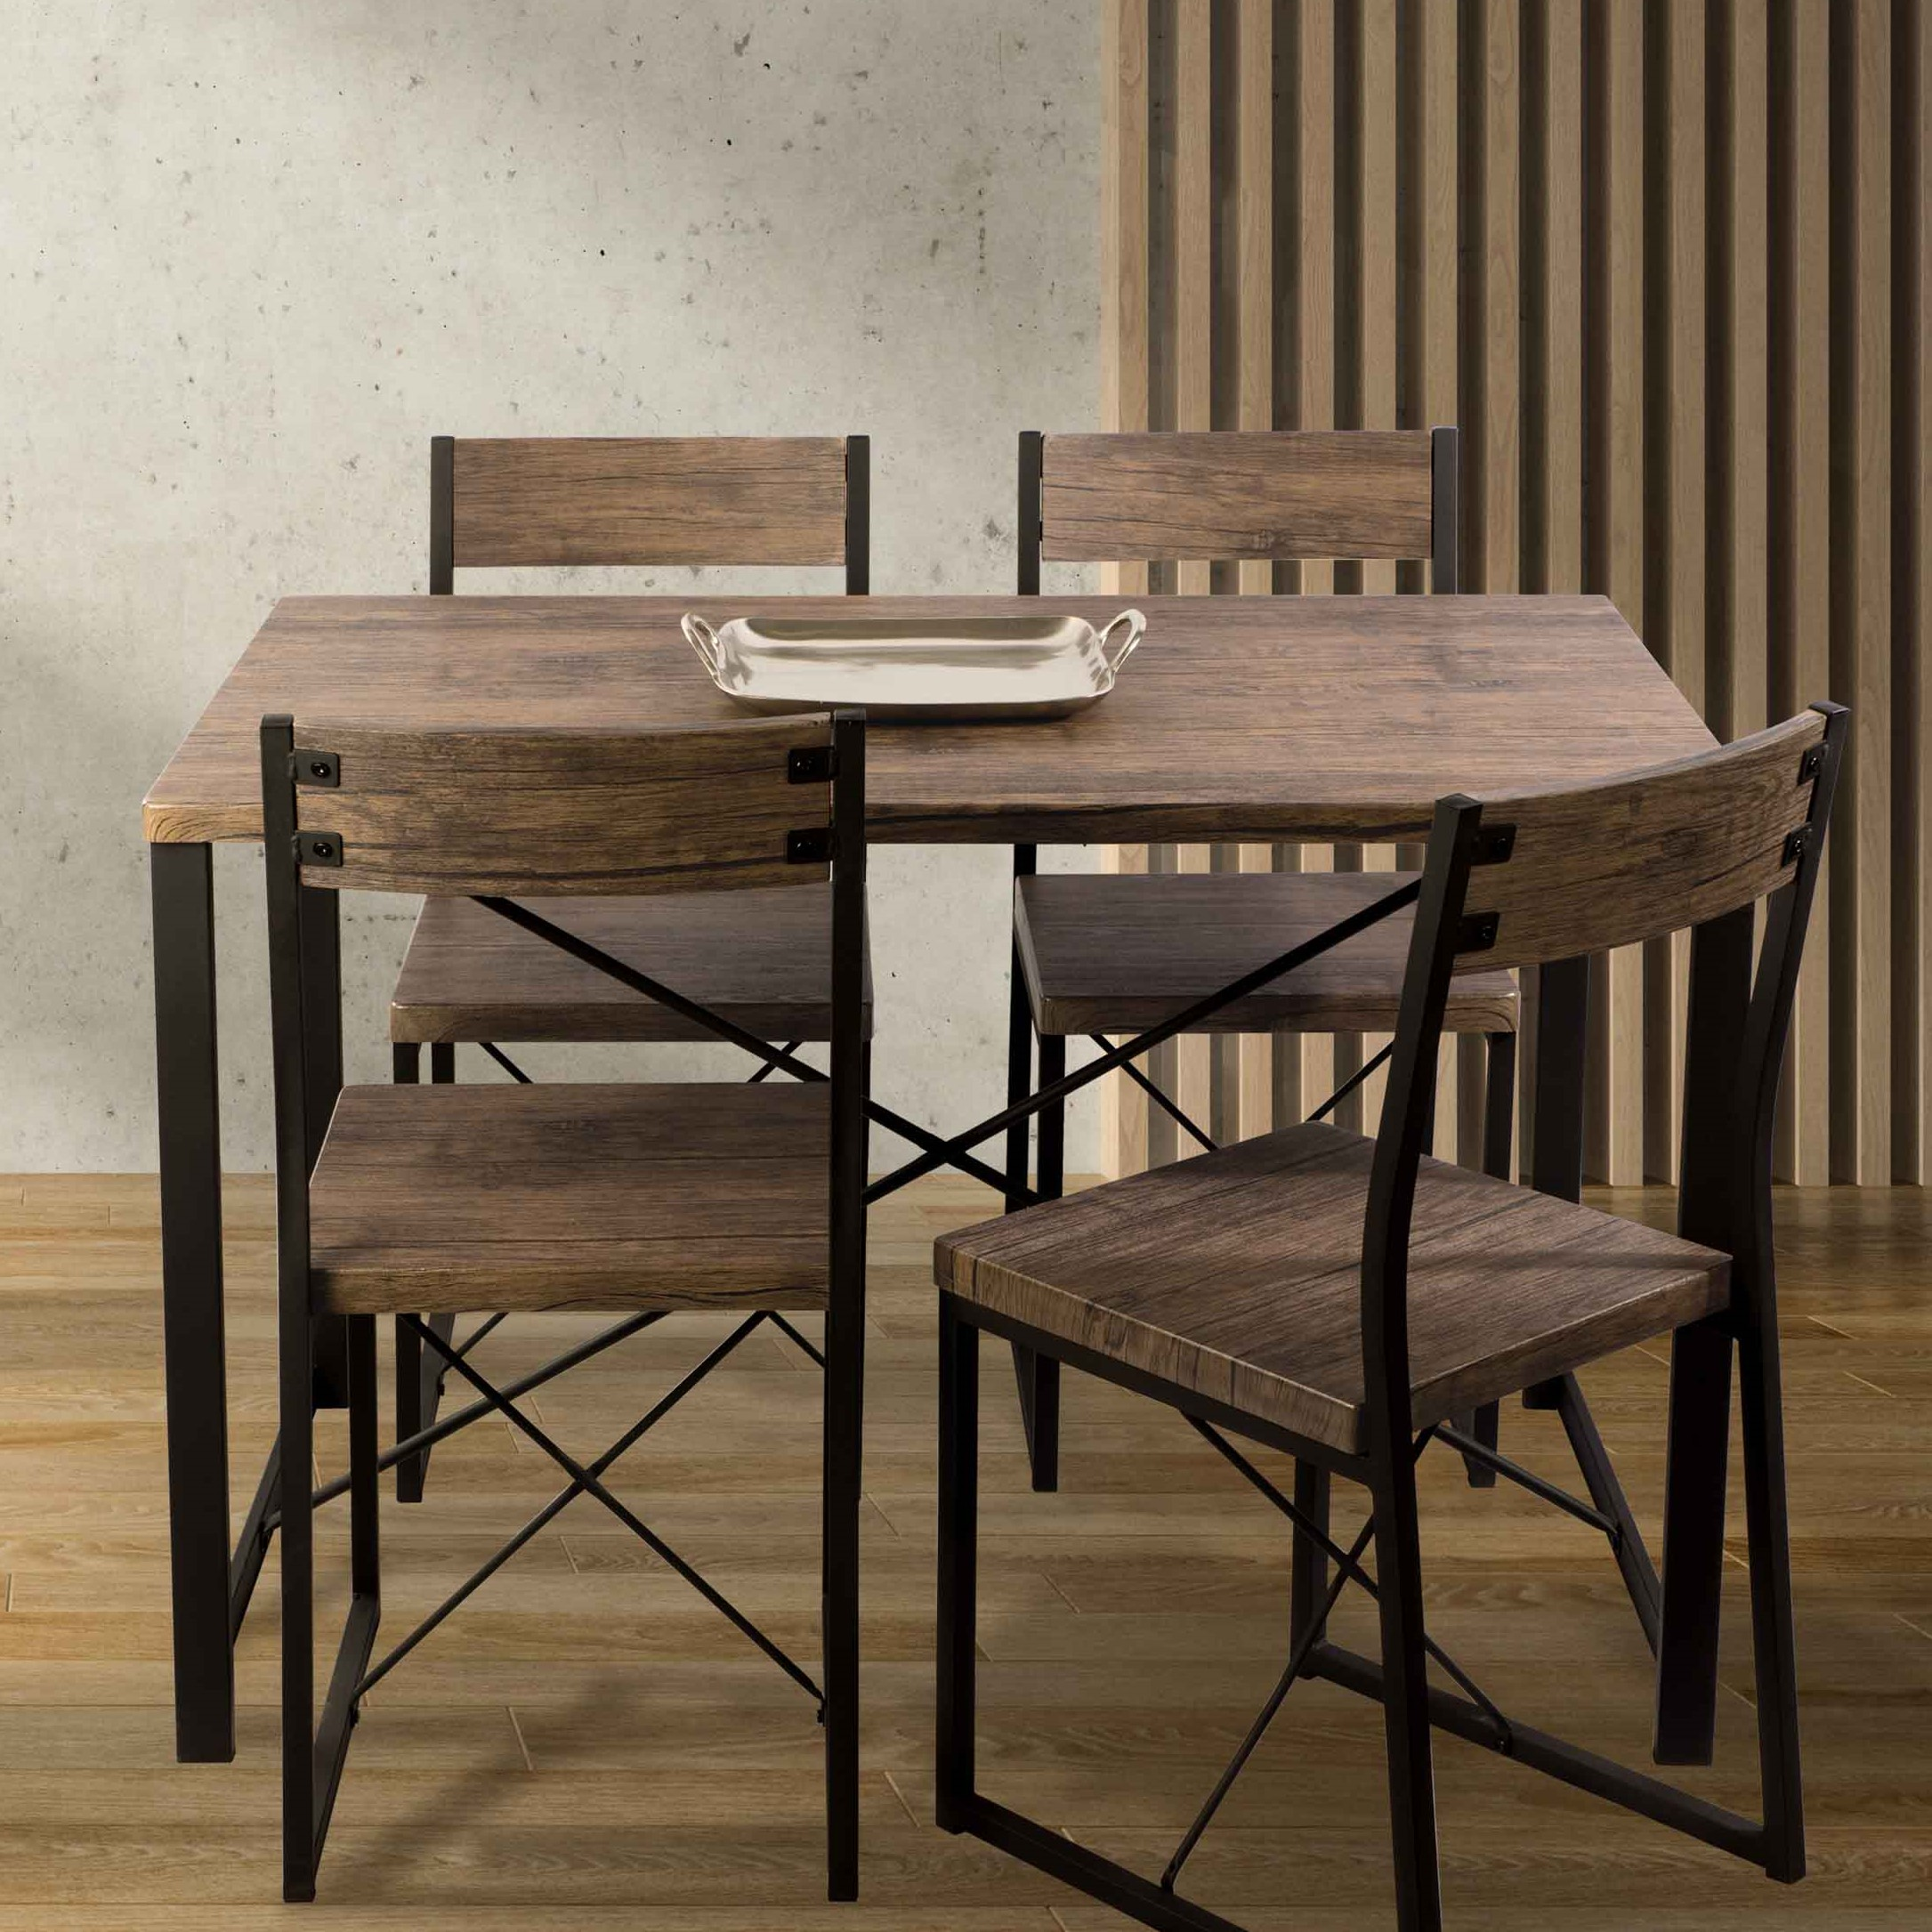 Atlantic Urban Blend Dining 5-Piece Set, Modern Steel Frame and Wood Grain Laminate